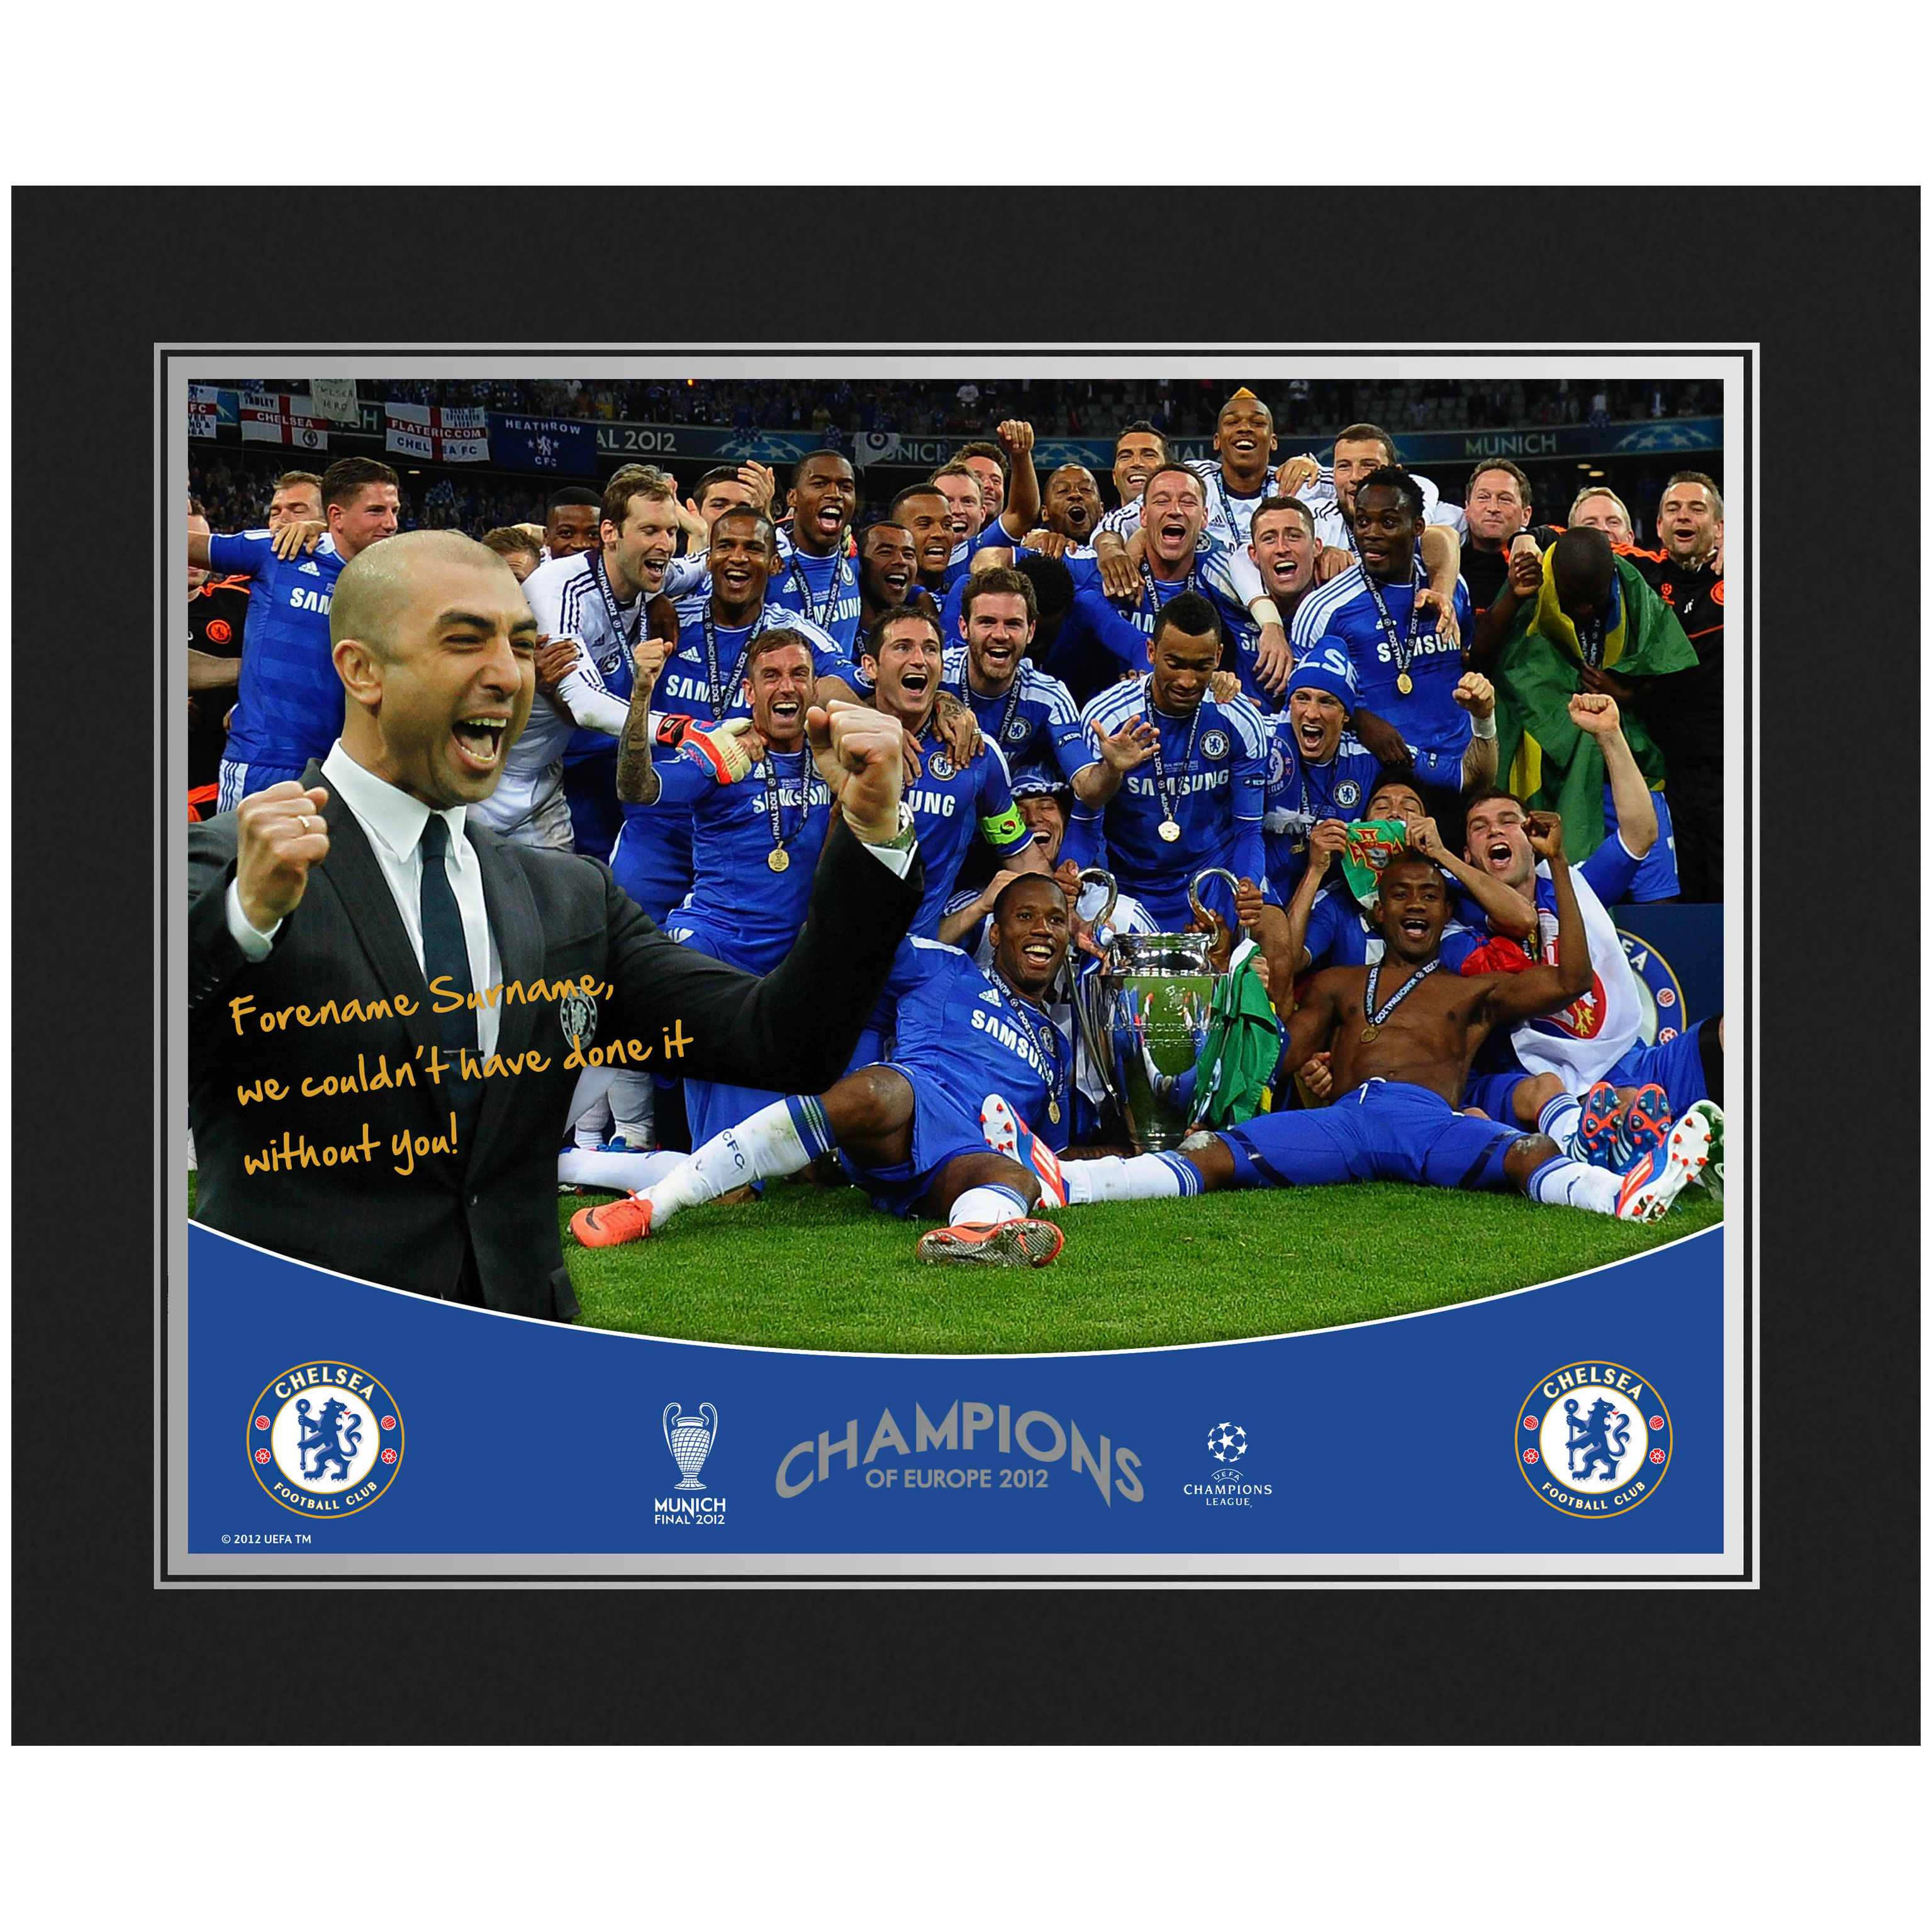 Chelsea Personalised Champions Photo in Presentation Folder